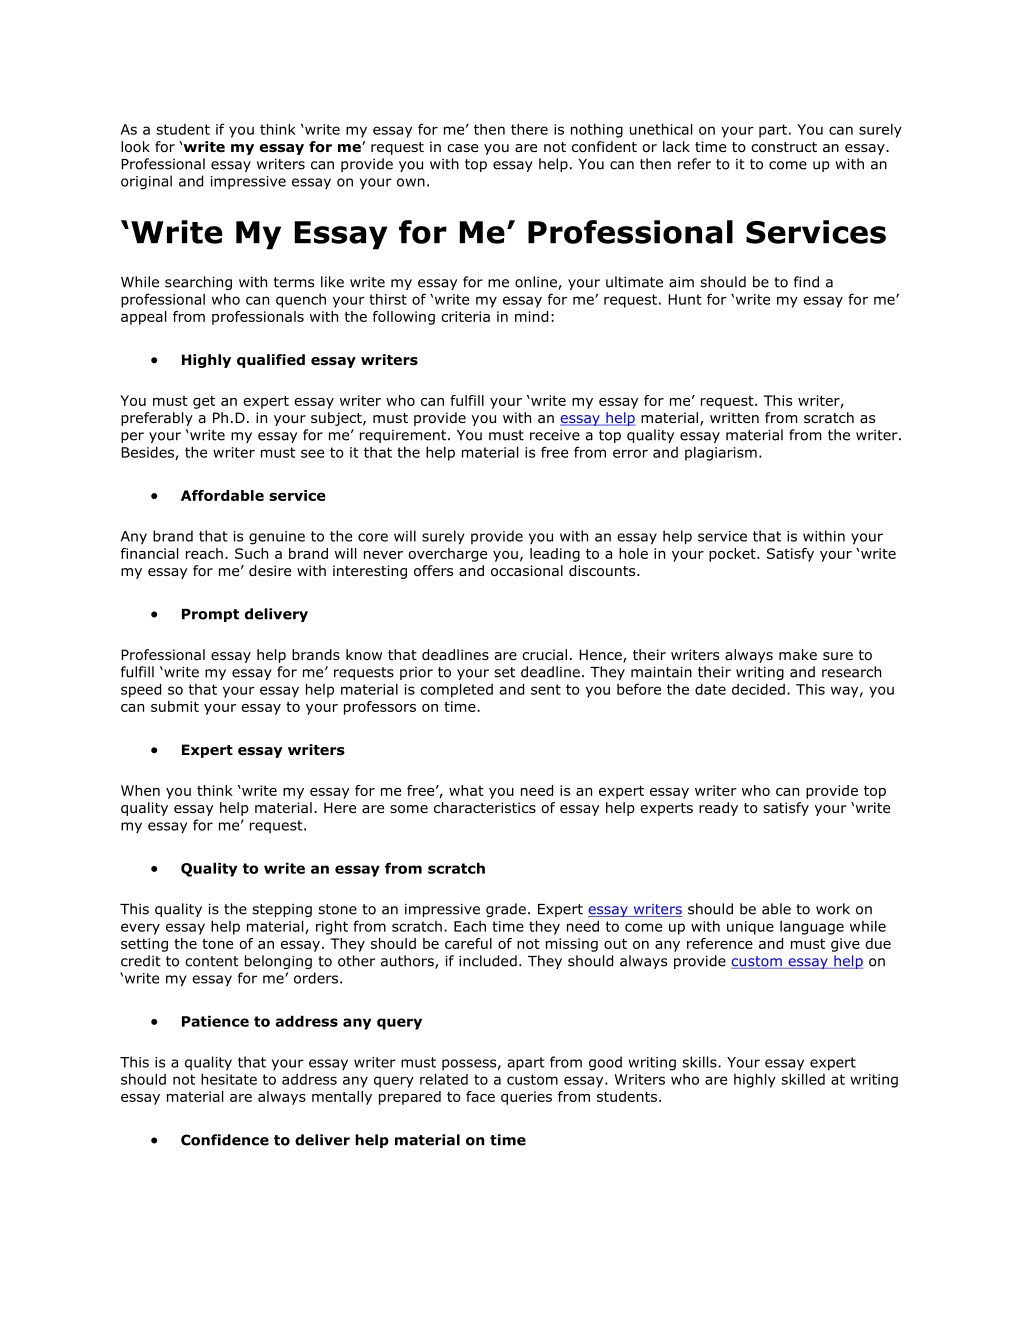 017 Write My Essay For Me Example As Student If You Think Surprising Reviews Canada Free Uk Full